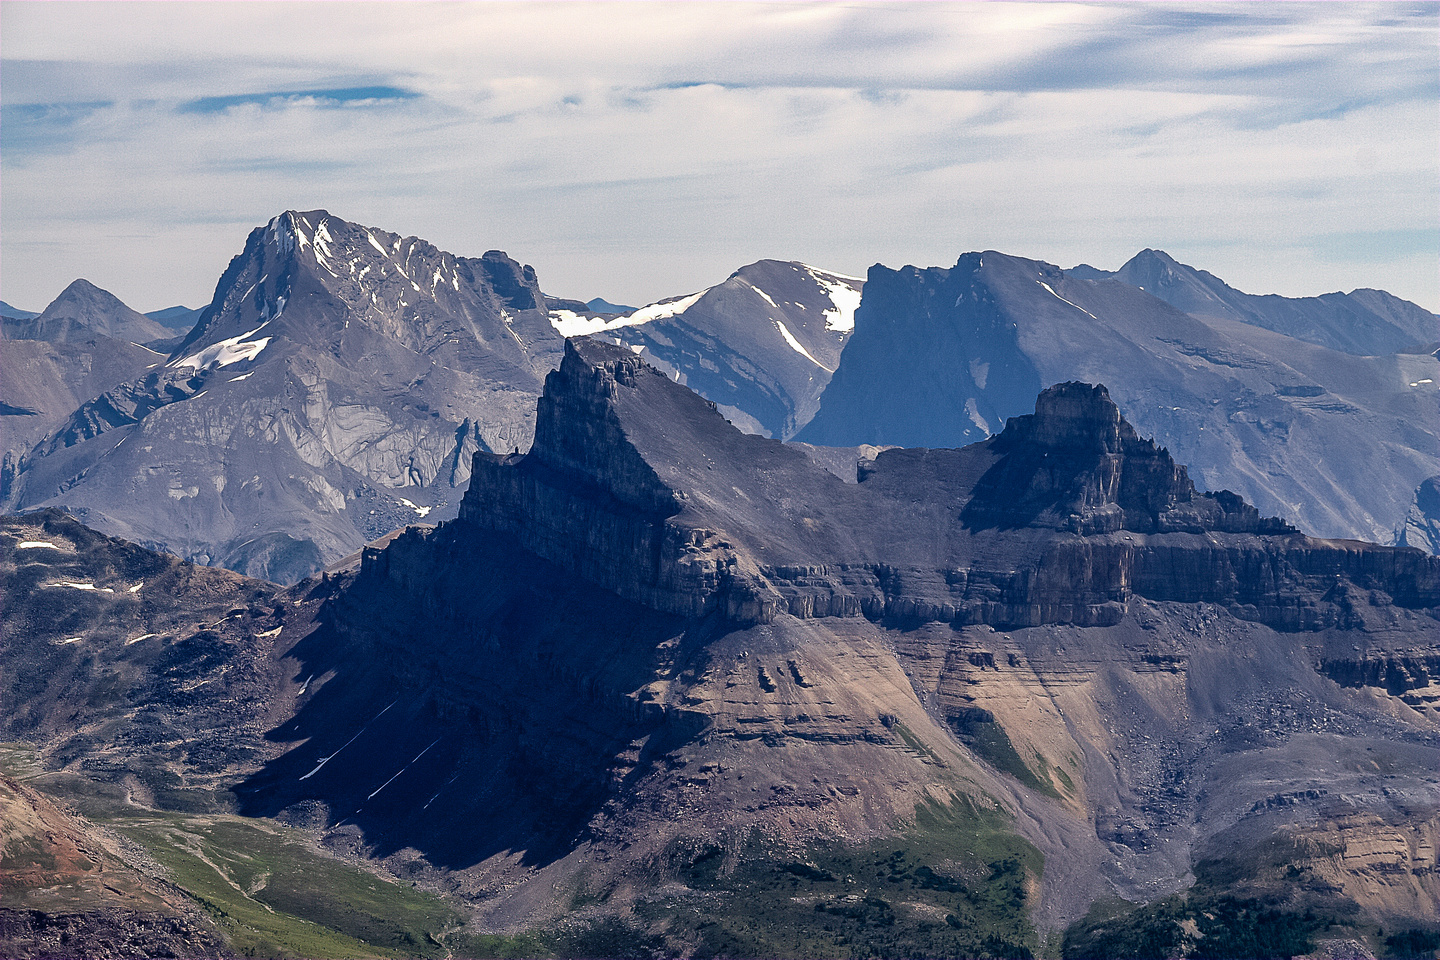 Gorgeous Molar Mountain with Cyclone in the bg on the right and Cataract Peak in the bg on the left.